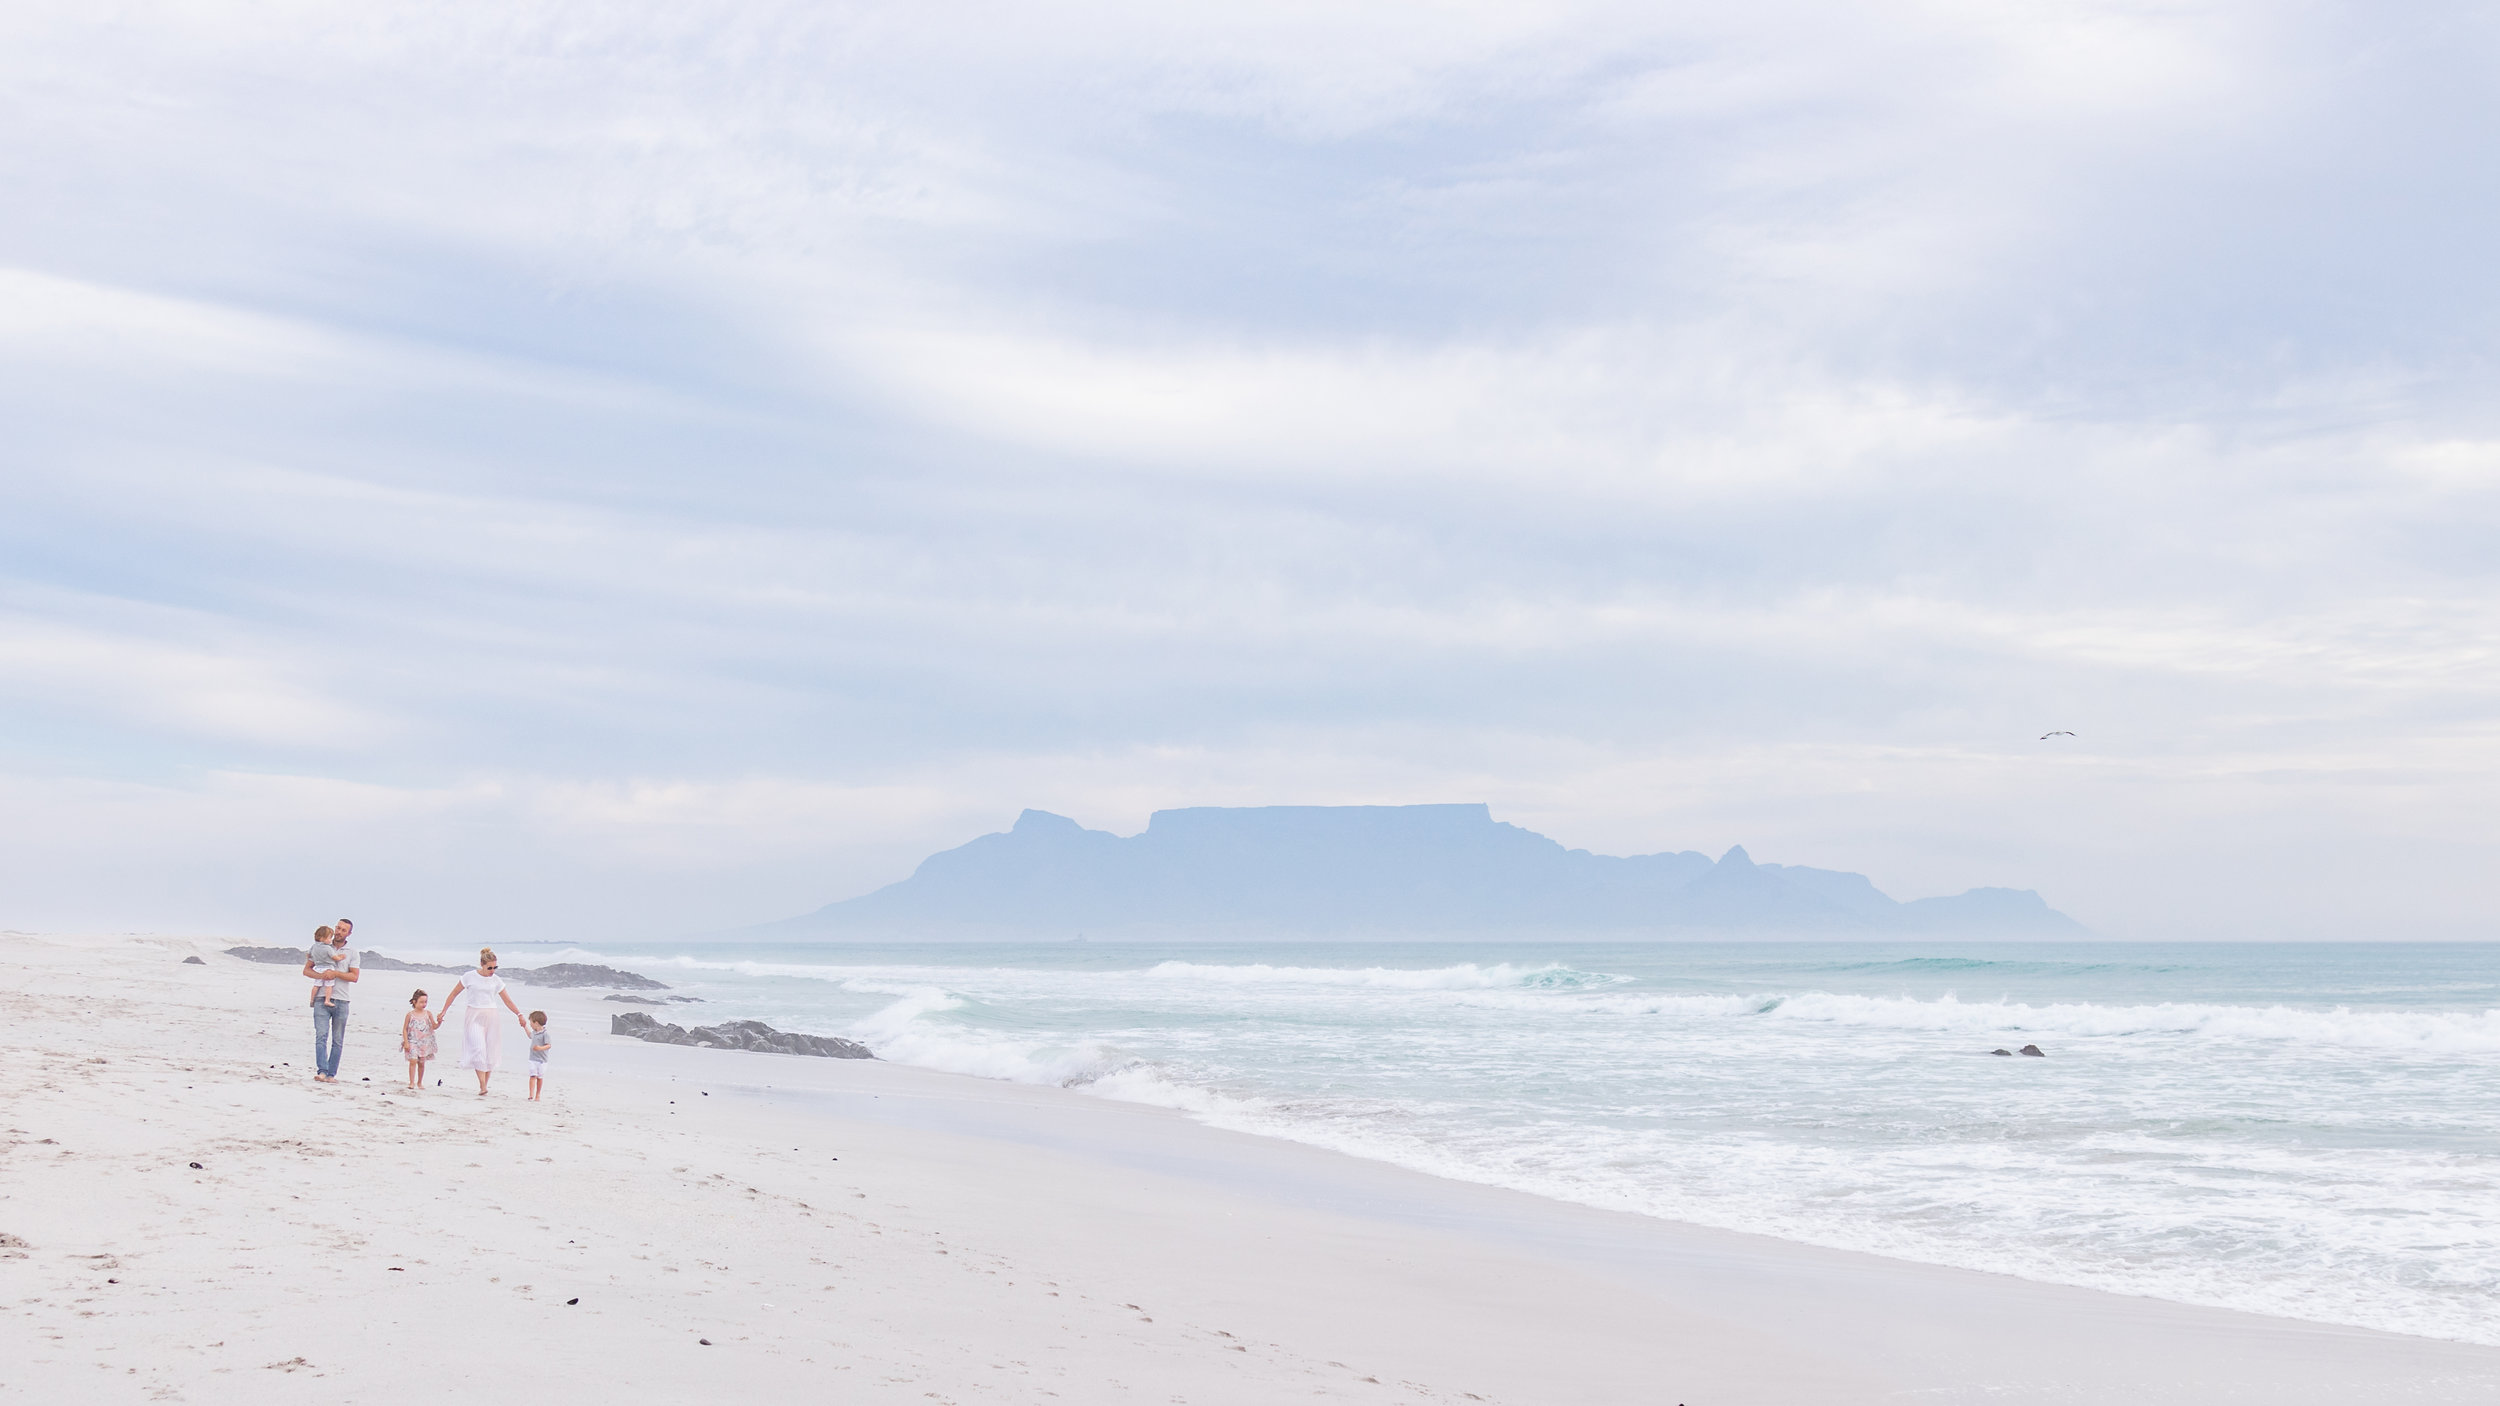 The majestic Table Mountain as our backdrop - we really couldn't have asked for much better.